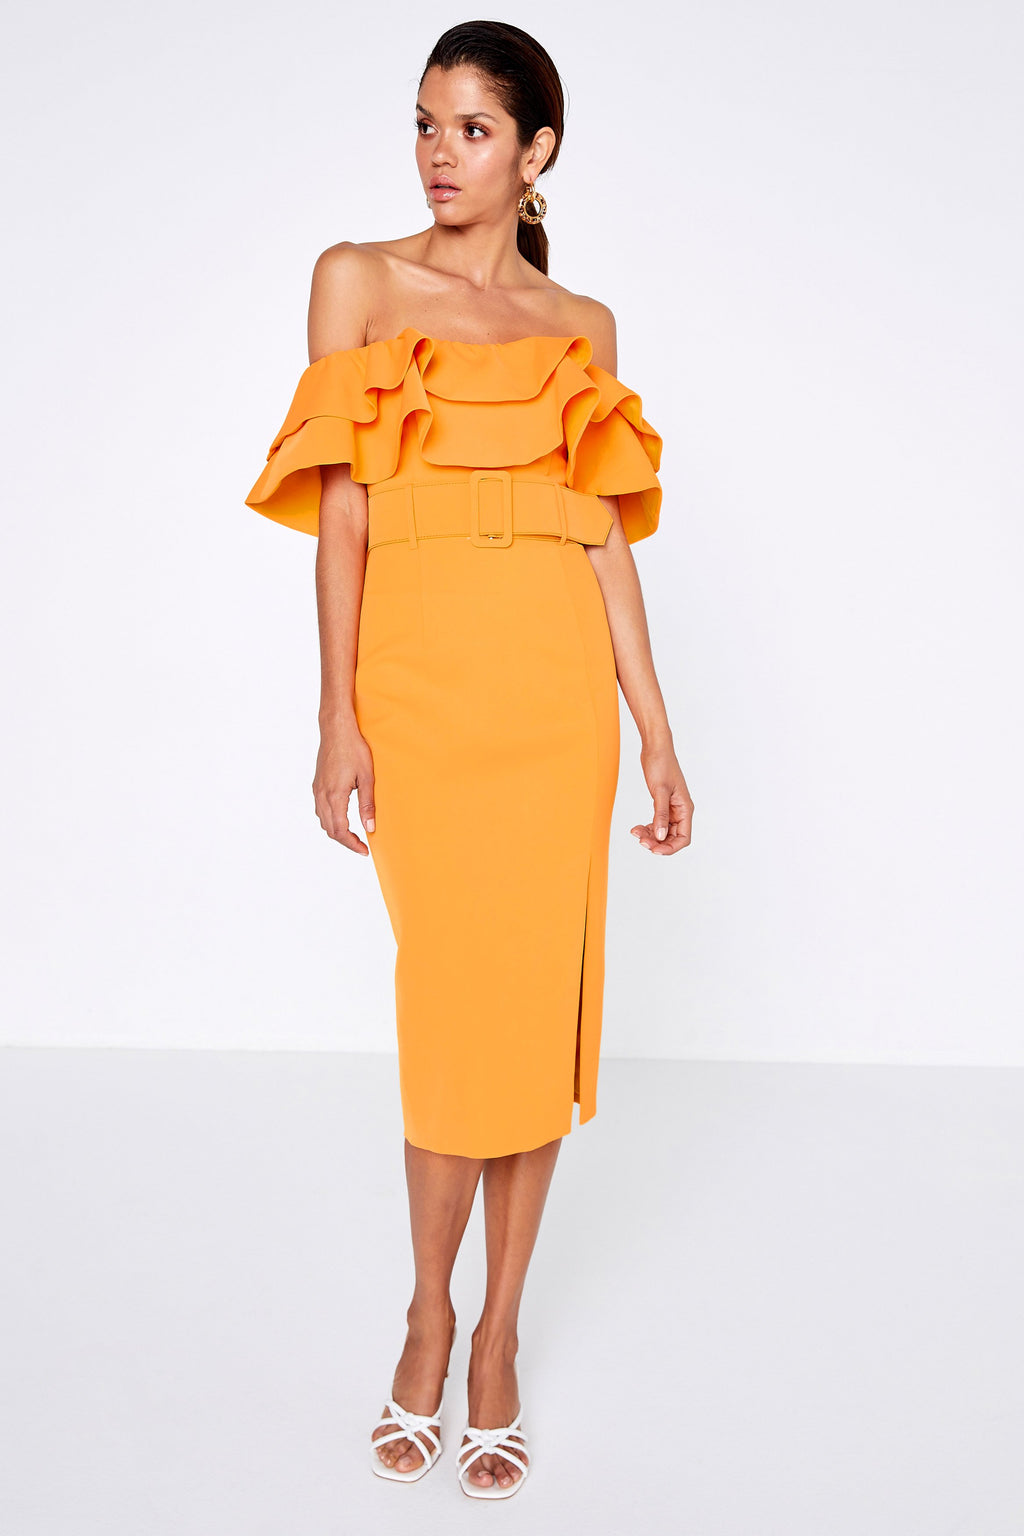 Island Nights dress citrus by Mossman. Dress, belted, ruffle sleeves, front slit, boutique, midi length, off the shoulder, Blush and Lace, Oakville, Mississauga, Toronto, Milton, Burlington, fashion, upscale.